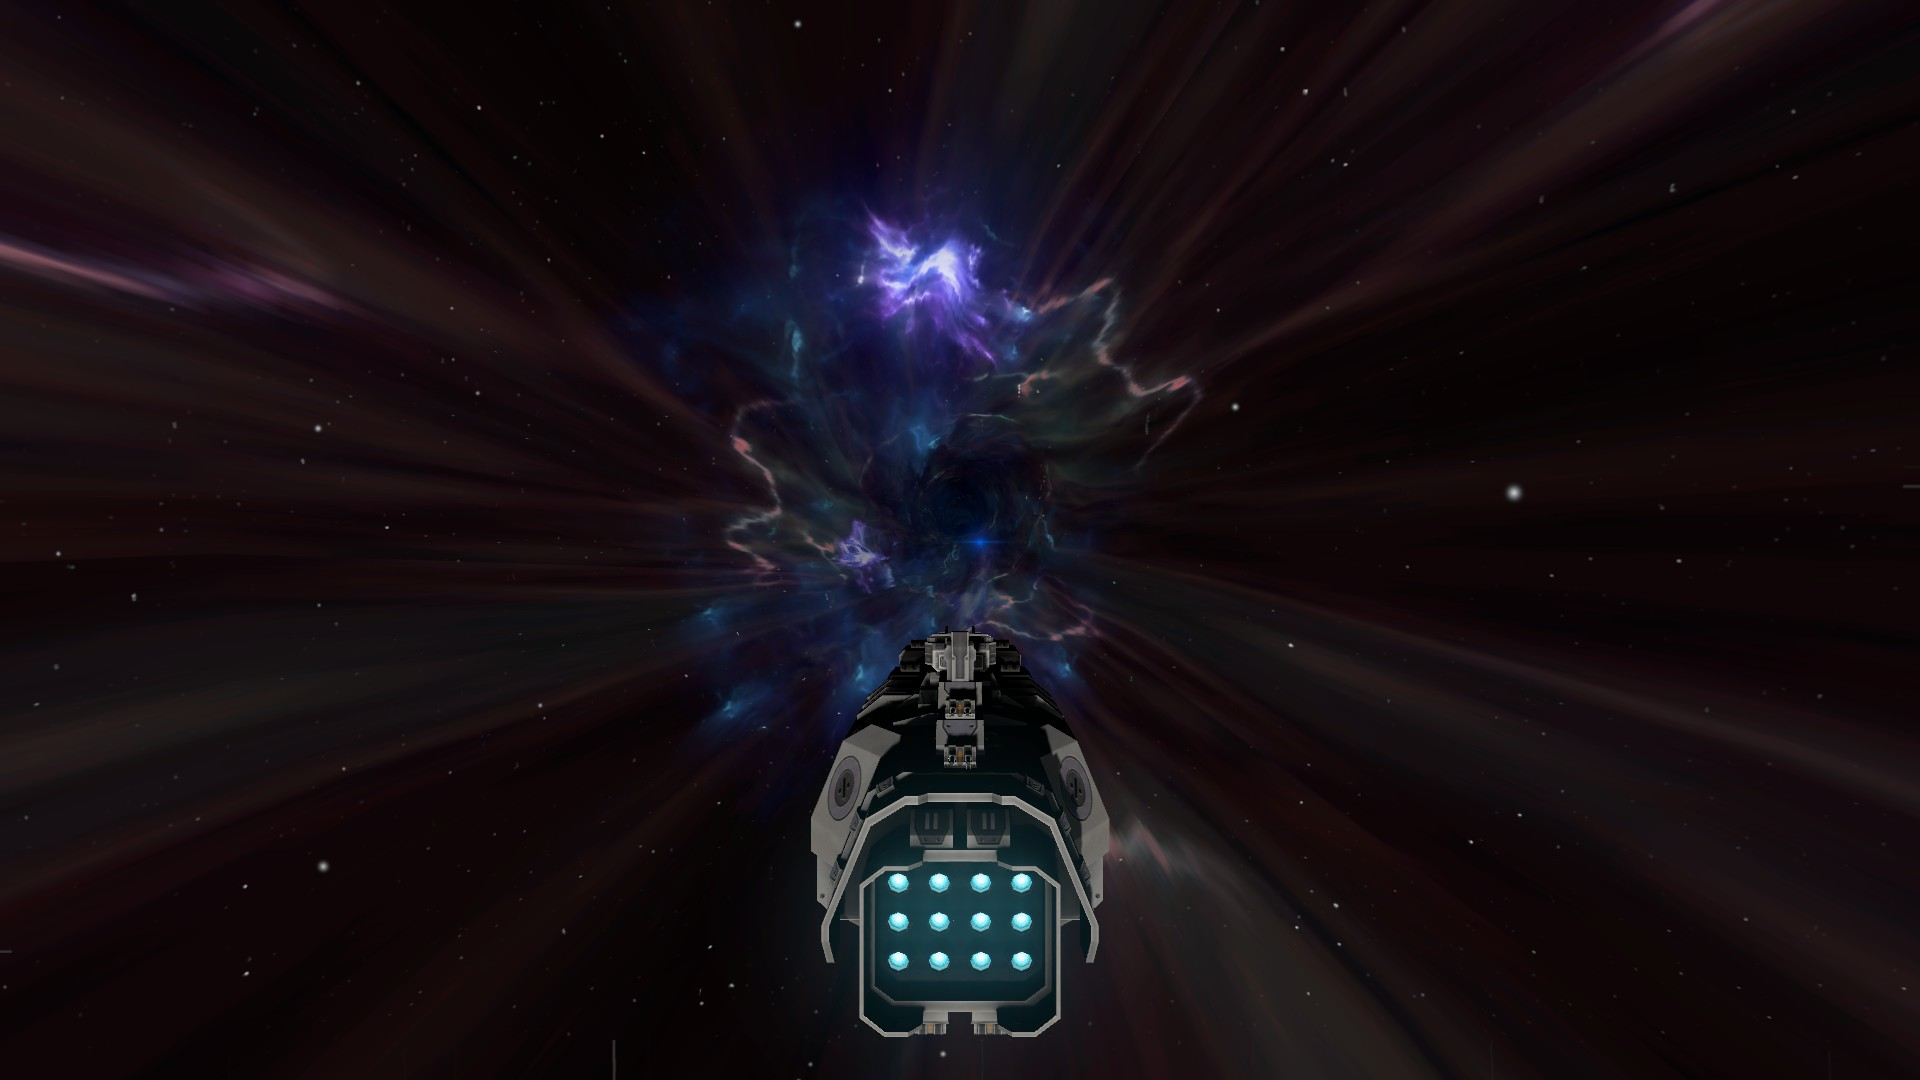 The Final Frontier: Space Simulator screenshot